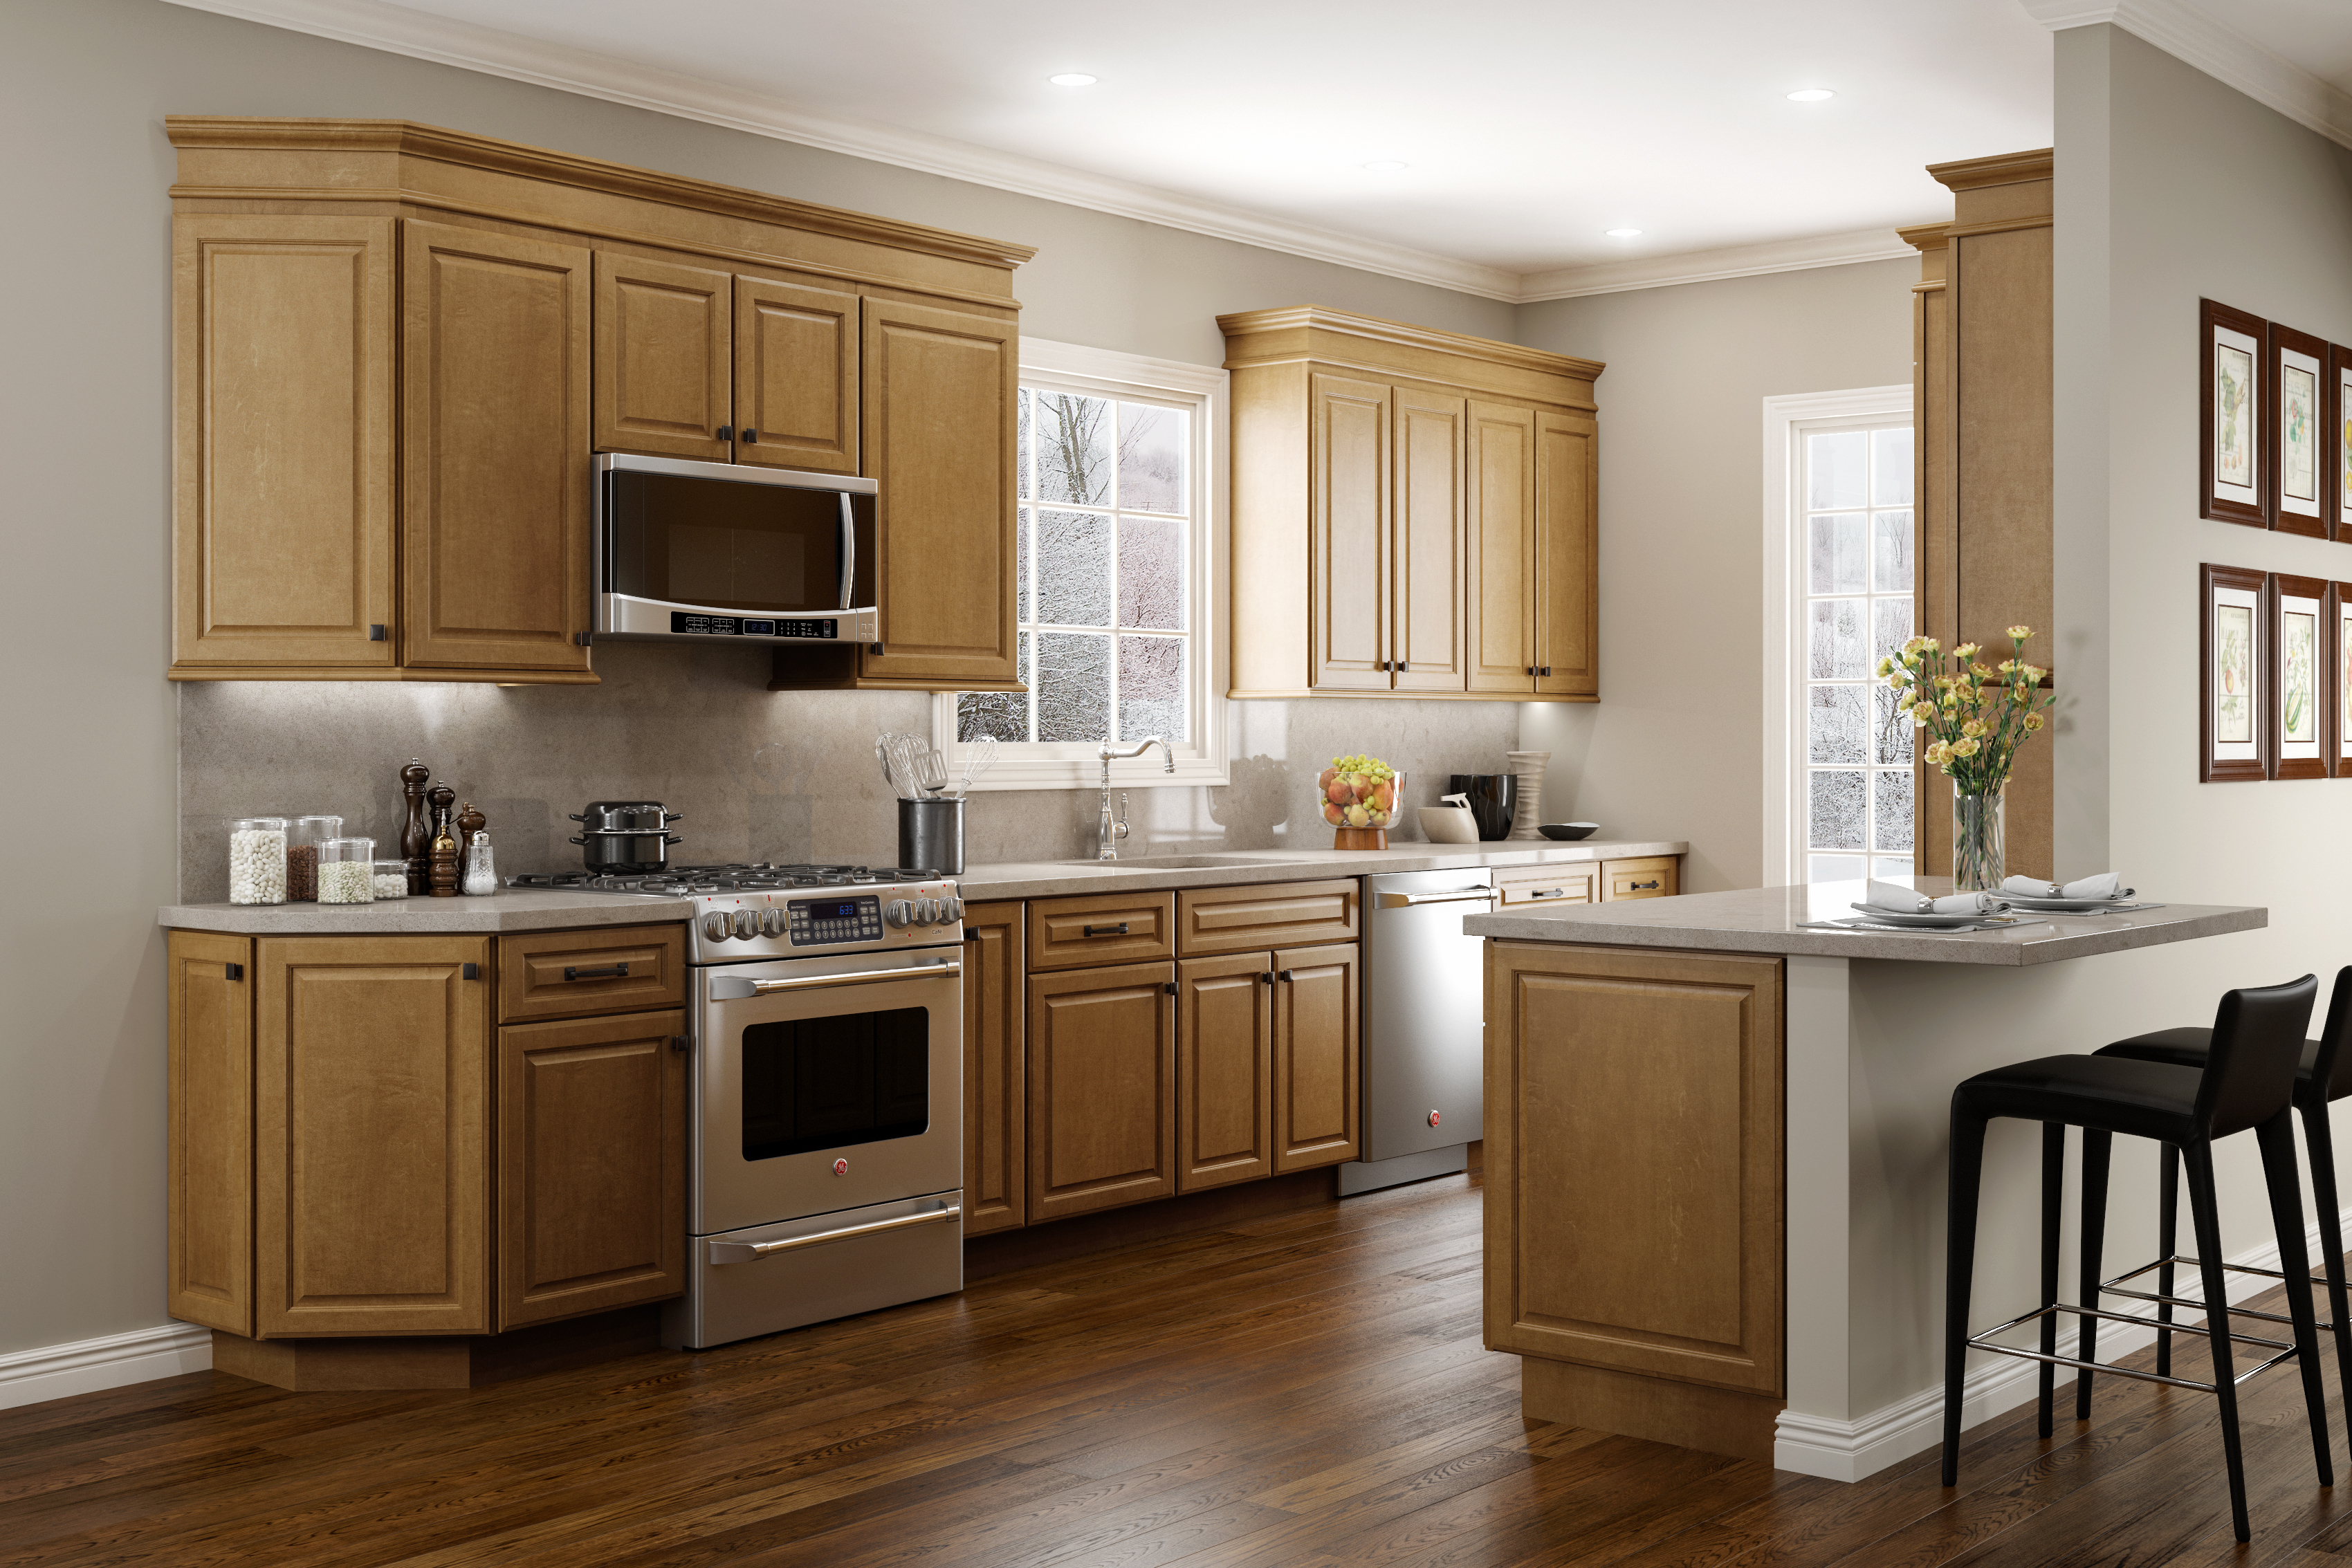 Kitchen Remodeling  Amc Contractors Llc. Kitchen Wall Hangings Pictures. Kitchen Nook Kijiji. Country Kitchen Sets. Kitchen Bar Overlooking Living Room. Kitchen Blues. Kitchenaid Large Appliance Customer Service. Kitchen Diner Fireplace. Kitchen Organization Theory